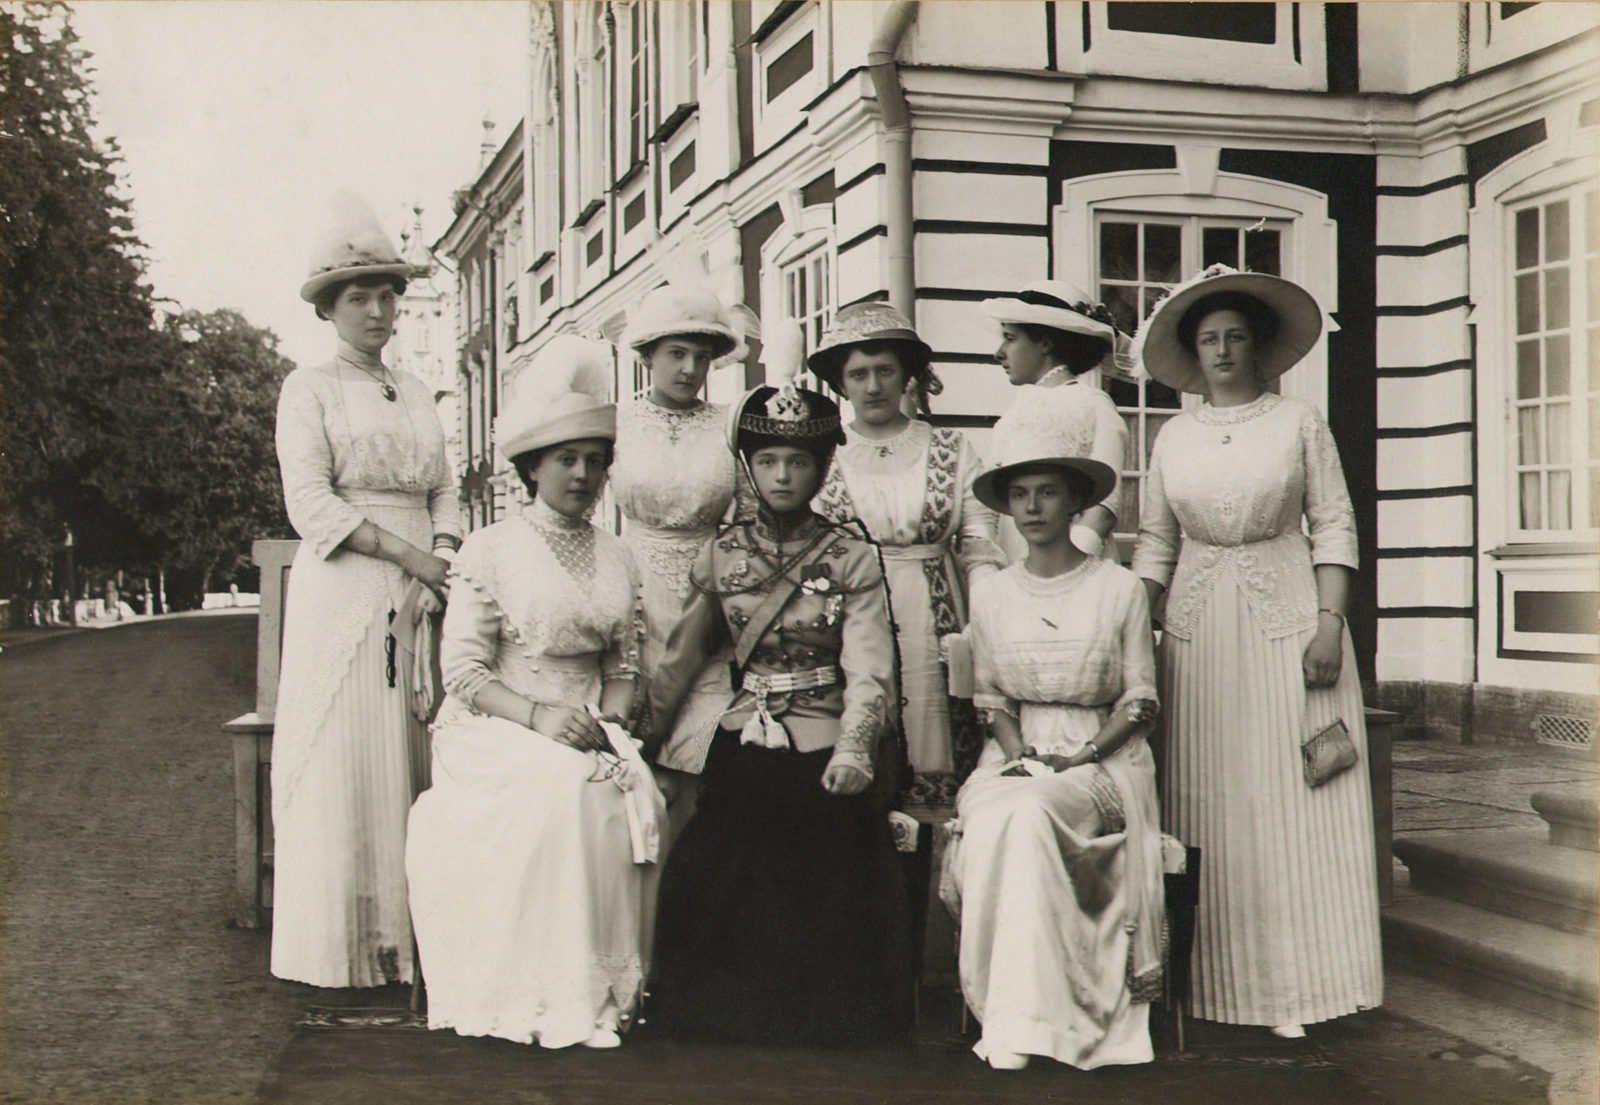 Chief of the 3rd Hussar Elisavetgrad Regiment, daughter of Emperor Nicholas II Grand Duchess Olga Nikolaevna with the wives of officers of the regiment.